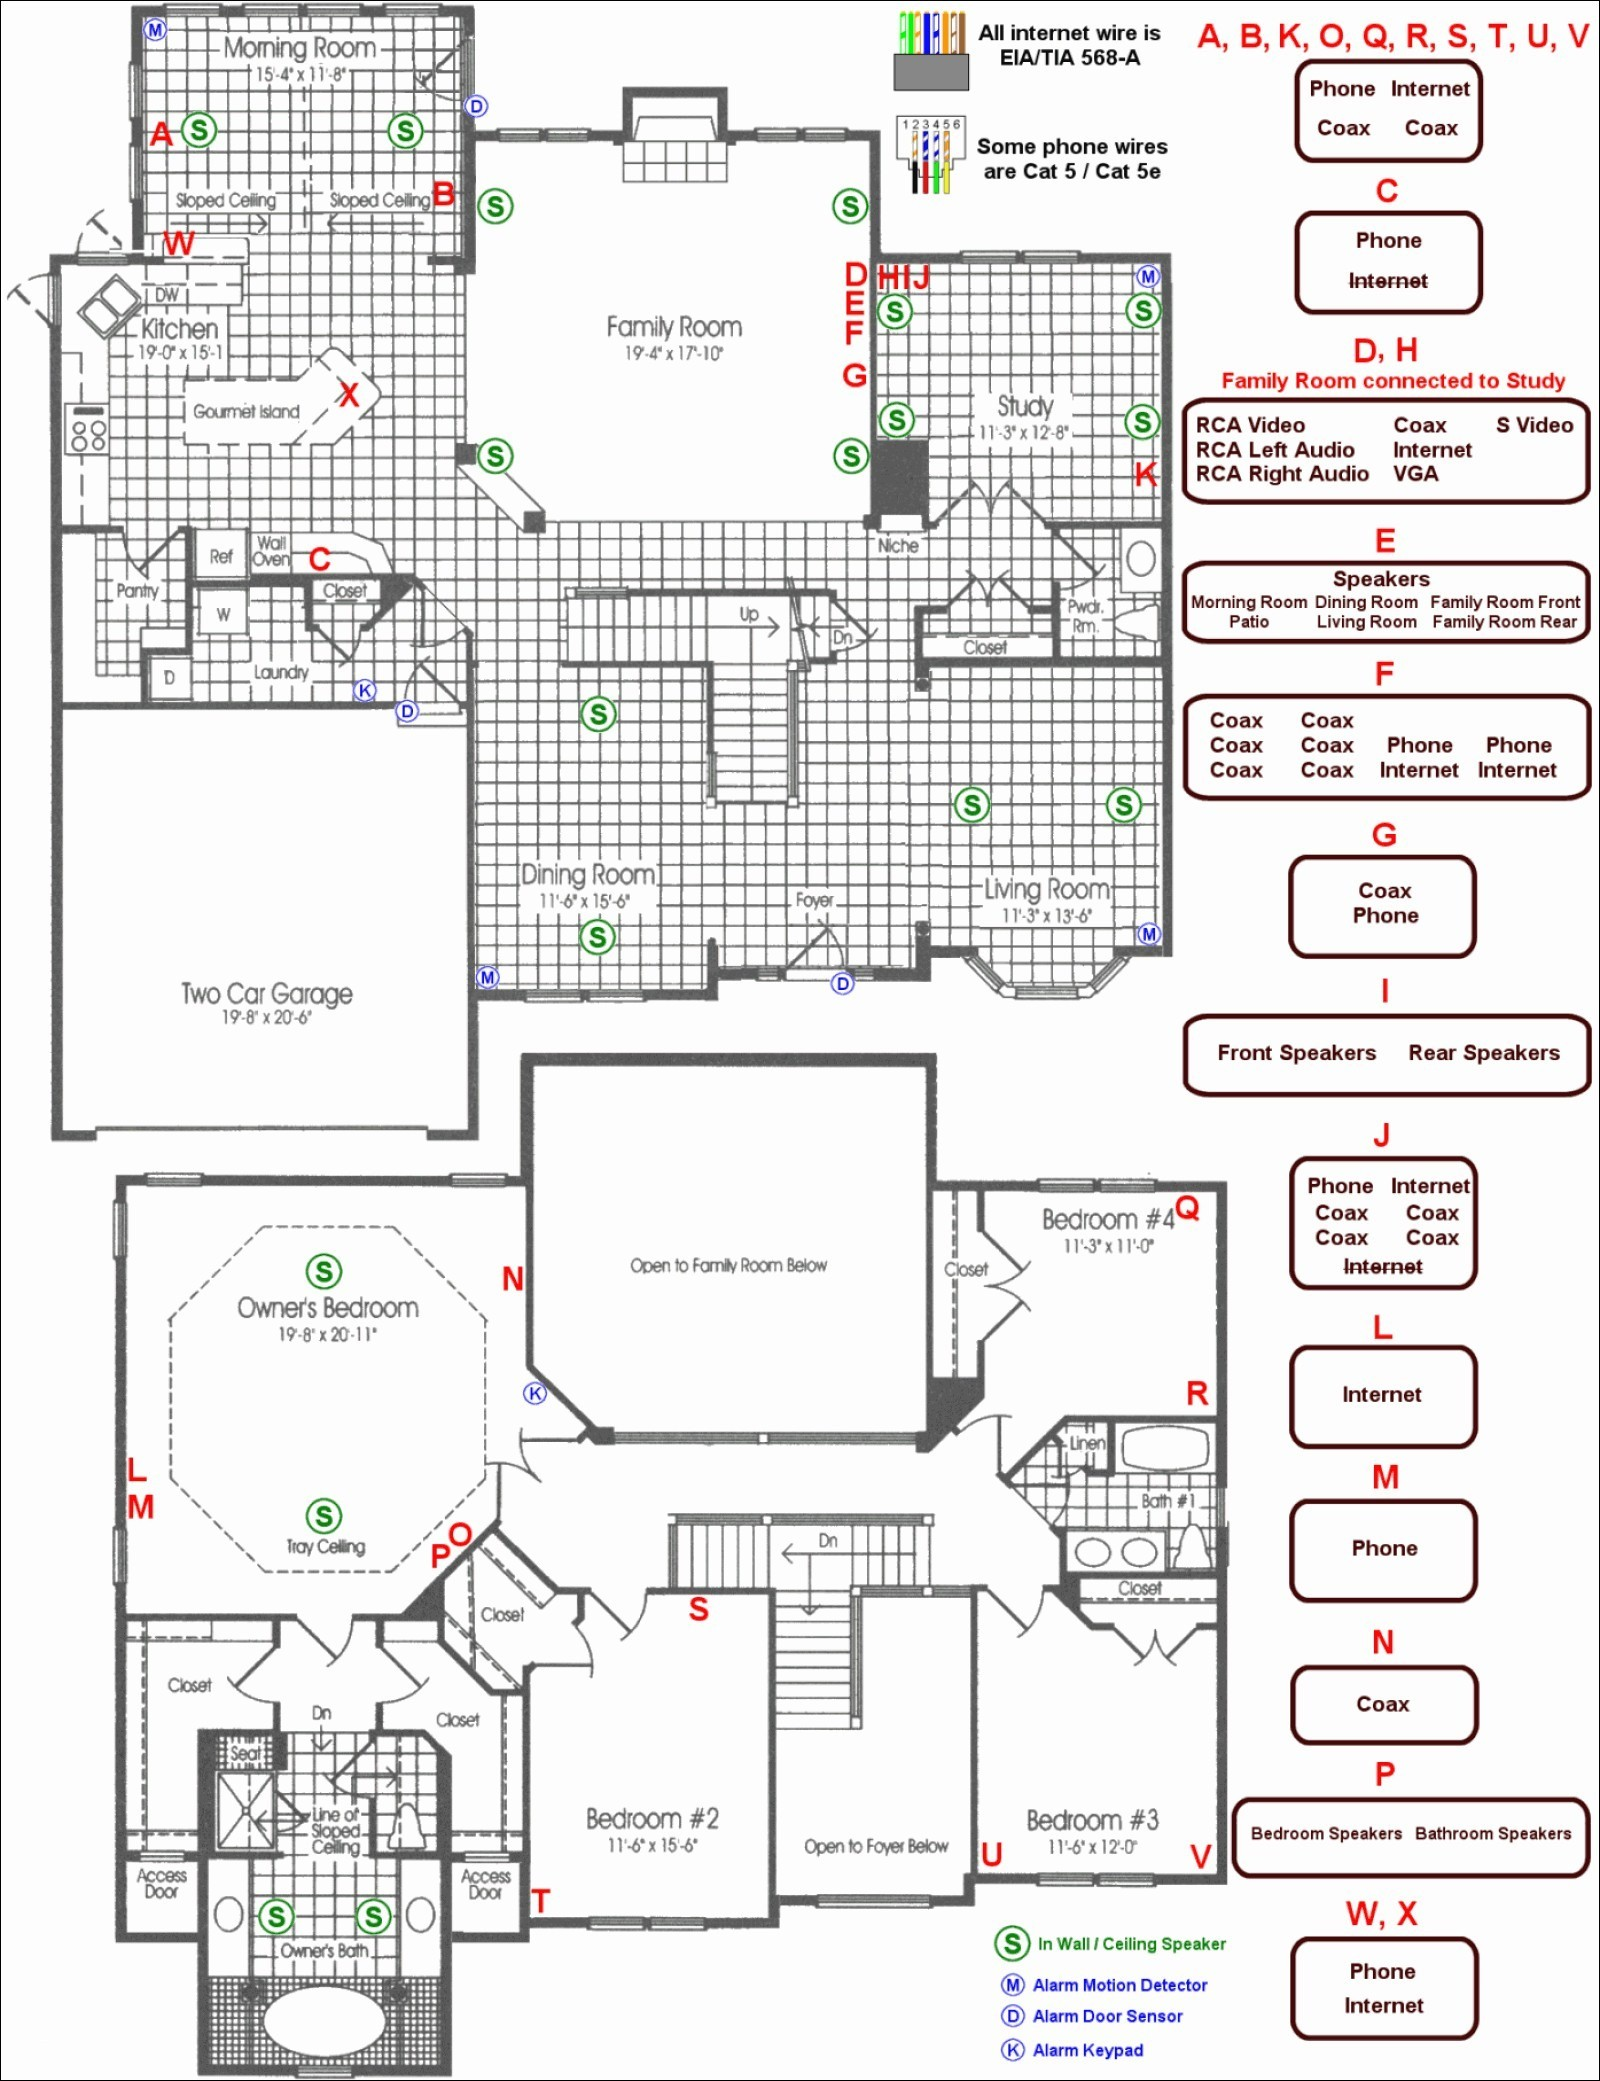 Systems Engineering V Diagram House Wiring Plan Download Of Systems Engineering V Diagram